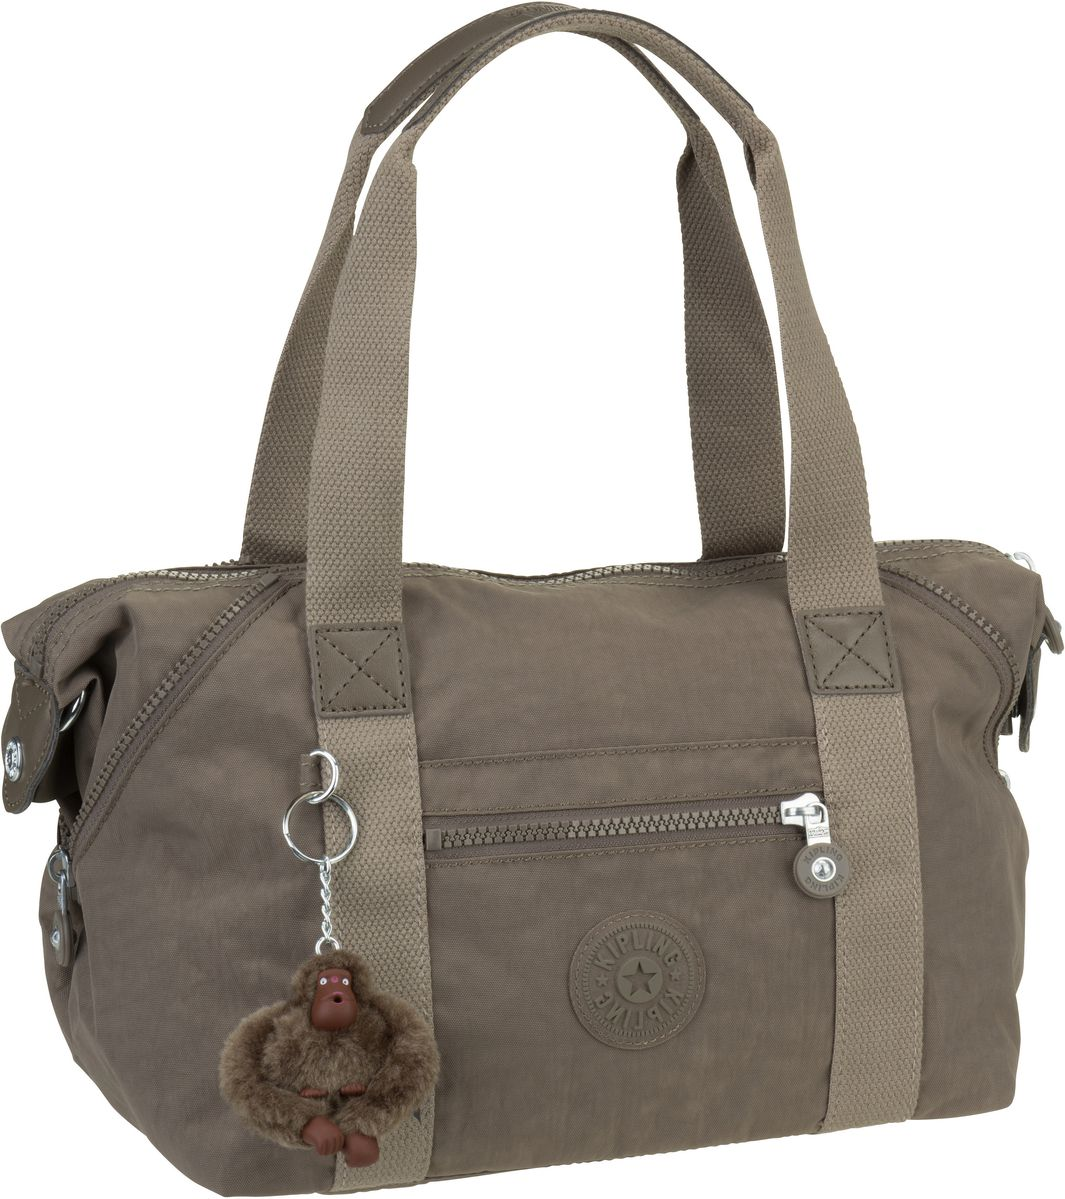 Handtasche Art Mini Basic True Beige (13 Liter)